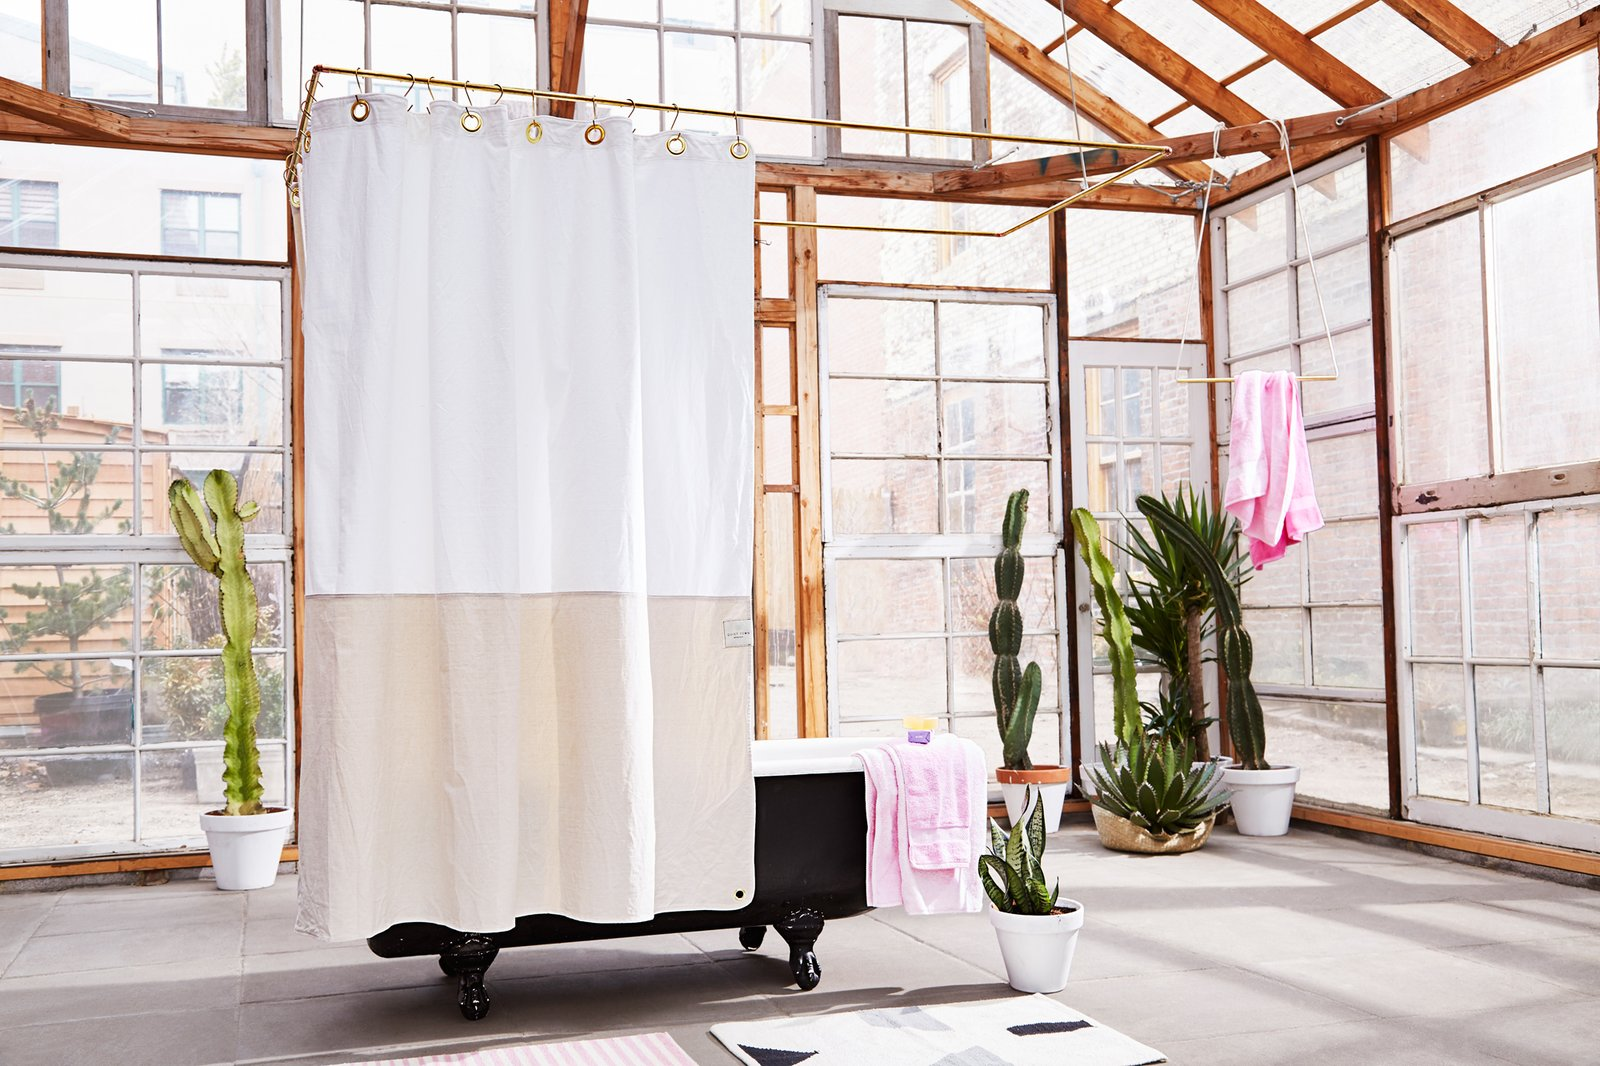 The Orient--Sand  This 100% GOTS certified organic cotton canvas curtain is inspired by a simple horizon line. We constructed it using denim hemming on the interior and exterior for a super-clean finish no matter what side of the curtain you're on. The corners are rounded like an old-fashioned, canvas sail.  Bathroom from Debut Spring 2016 Collection